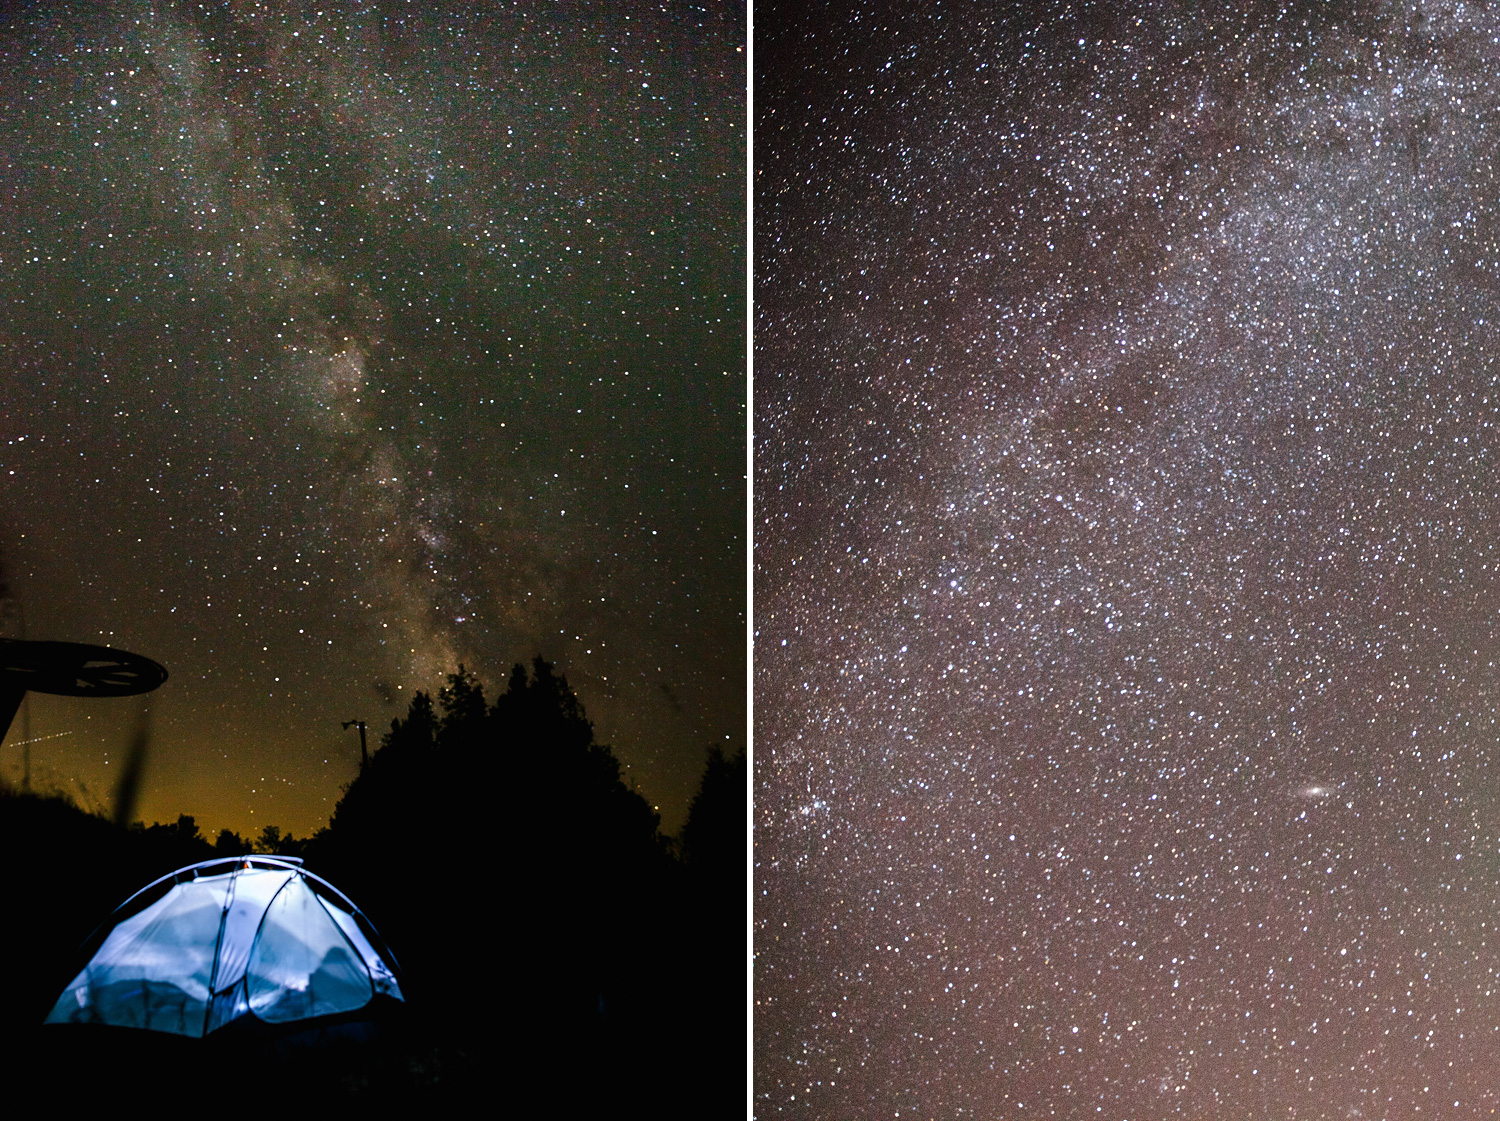 110-milky-way-and-tent.jpg